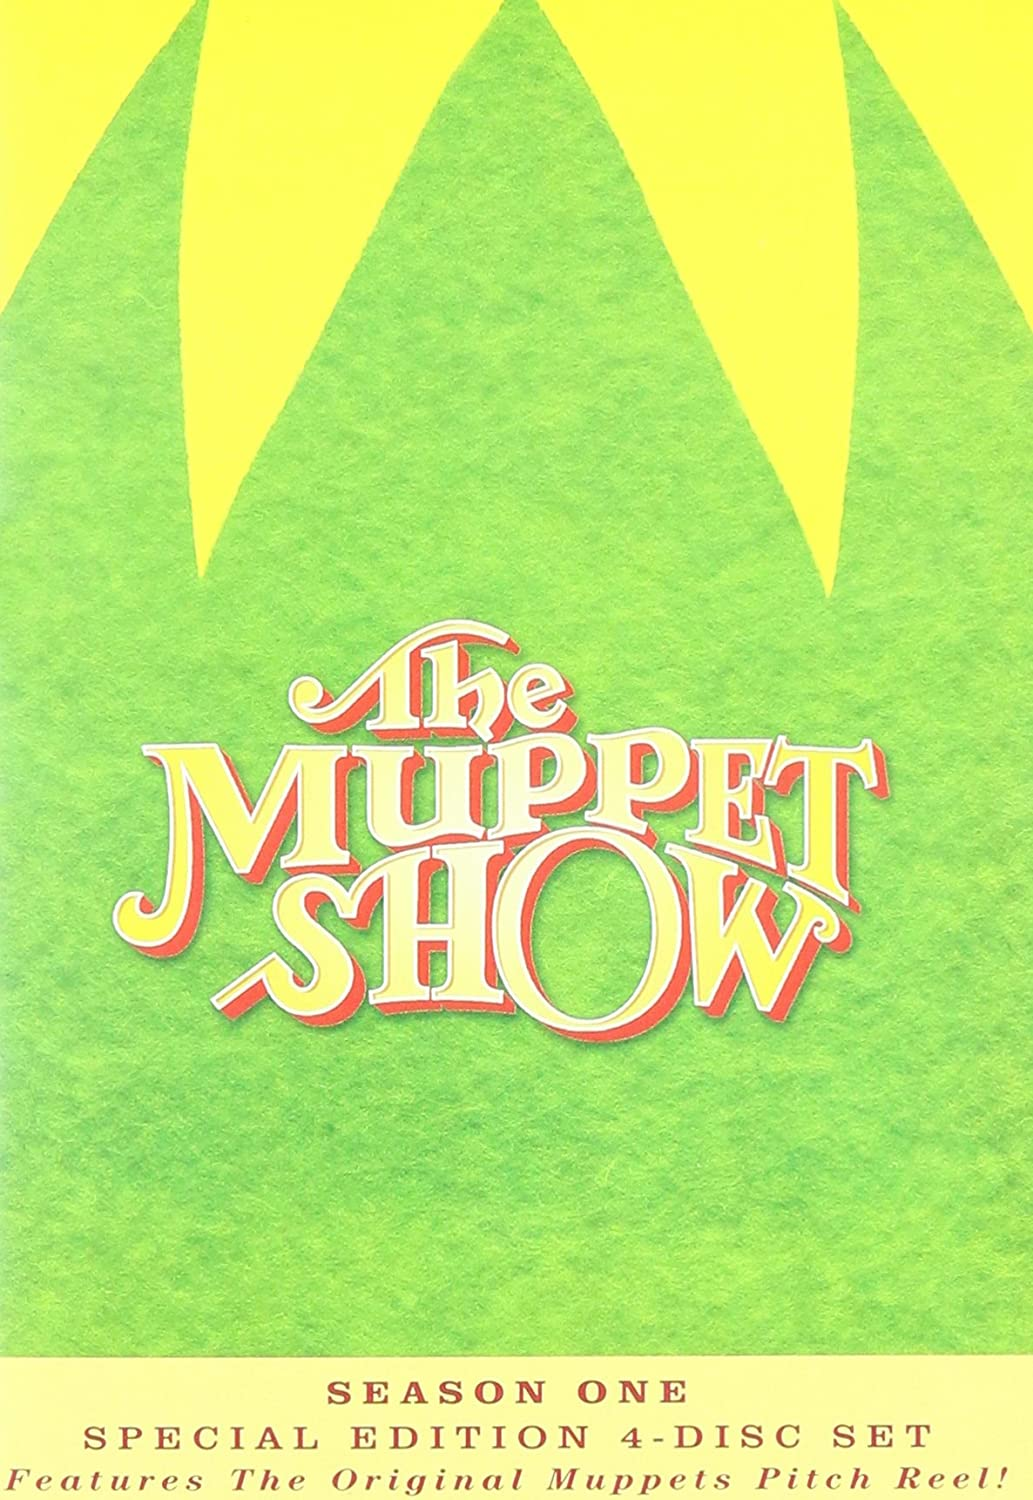 The Muppet Show Season 1: Special Edition Jim Henson Frank Oz Richard Hunt Dave Goelz